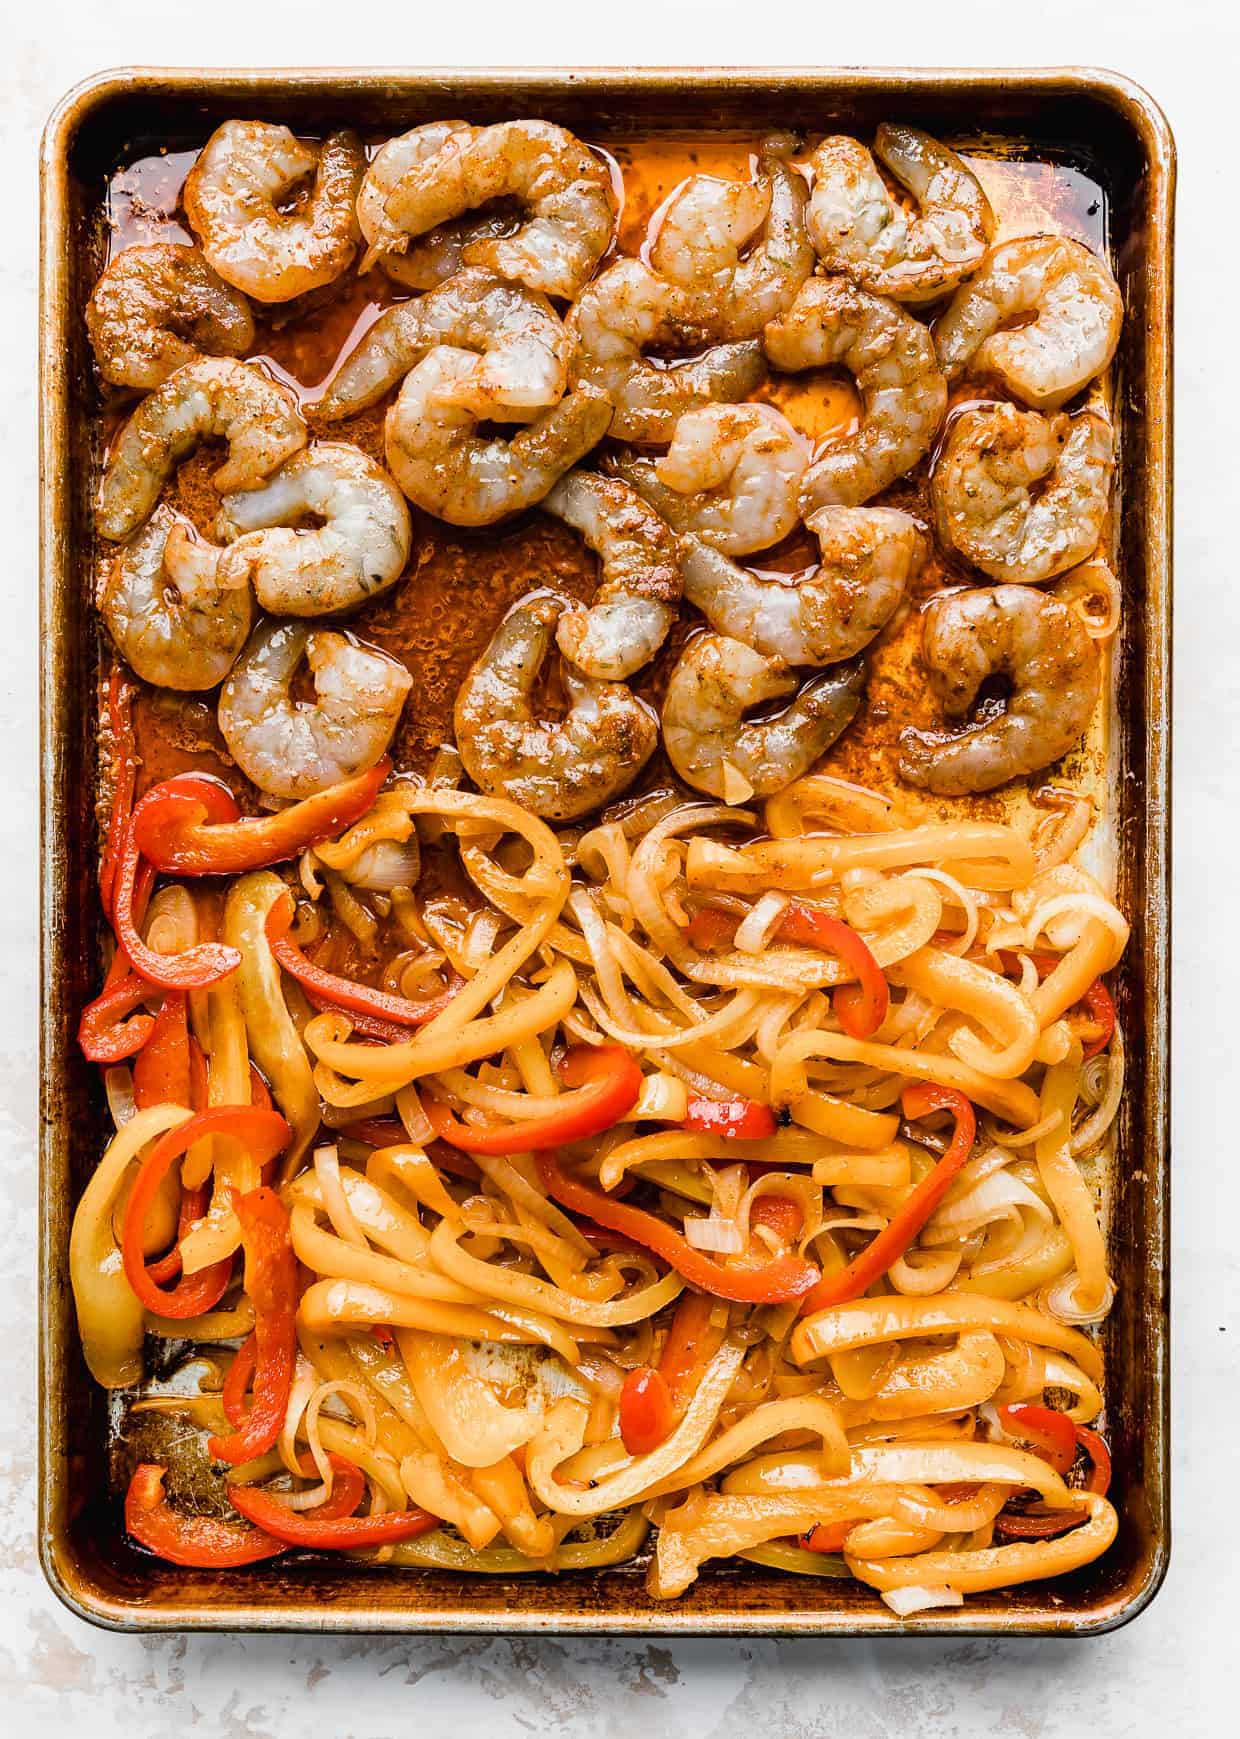 Shrimp and sliced peppers on a baking sheet against a white background.